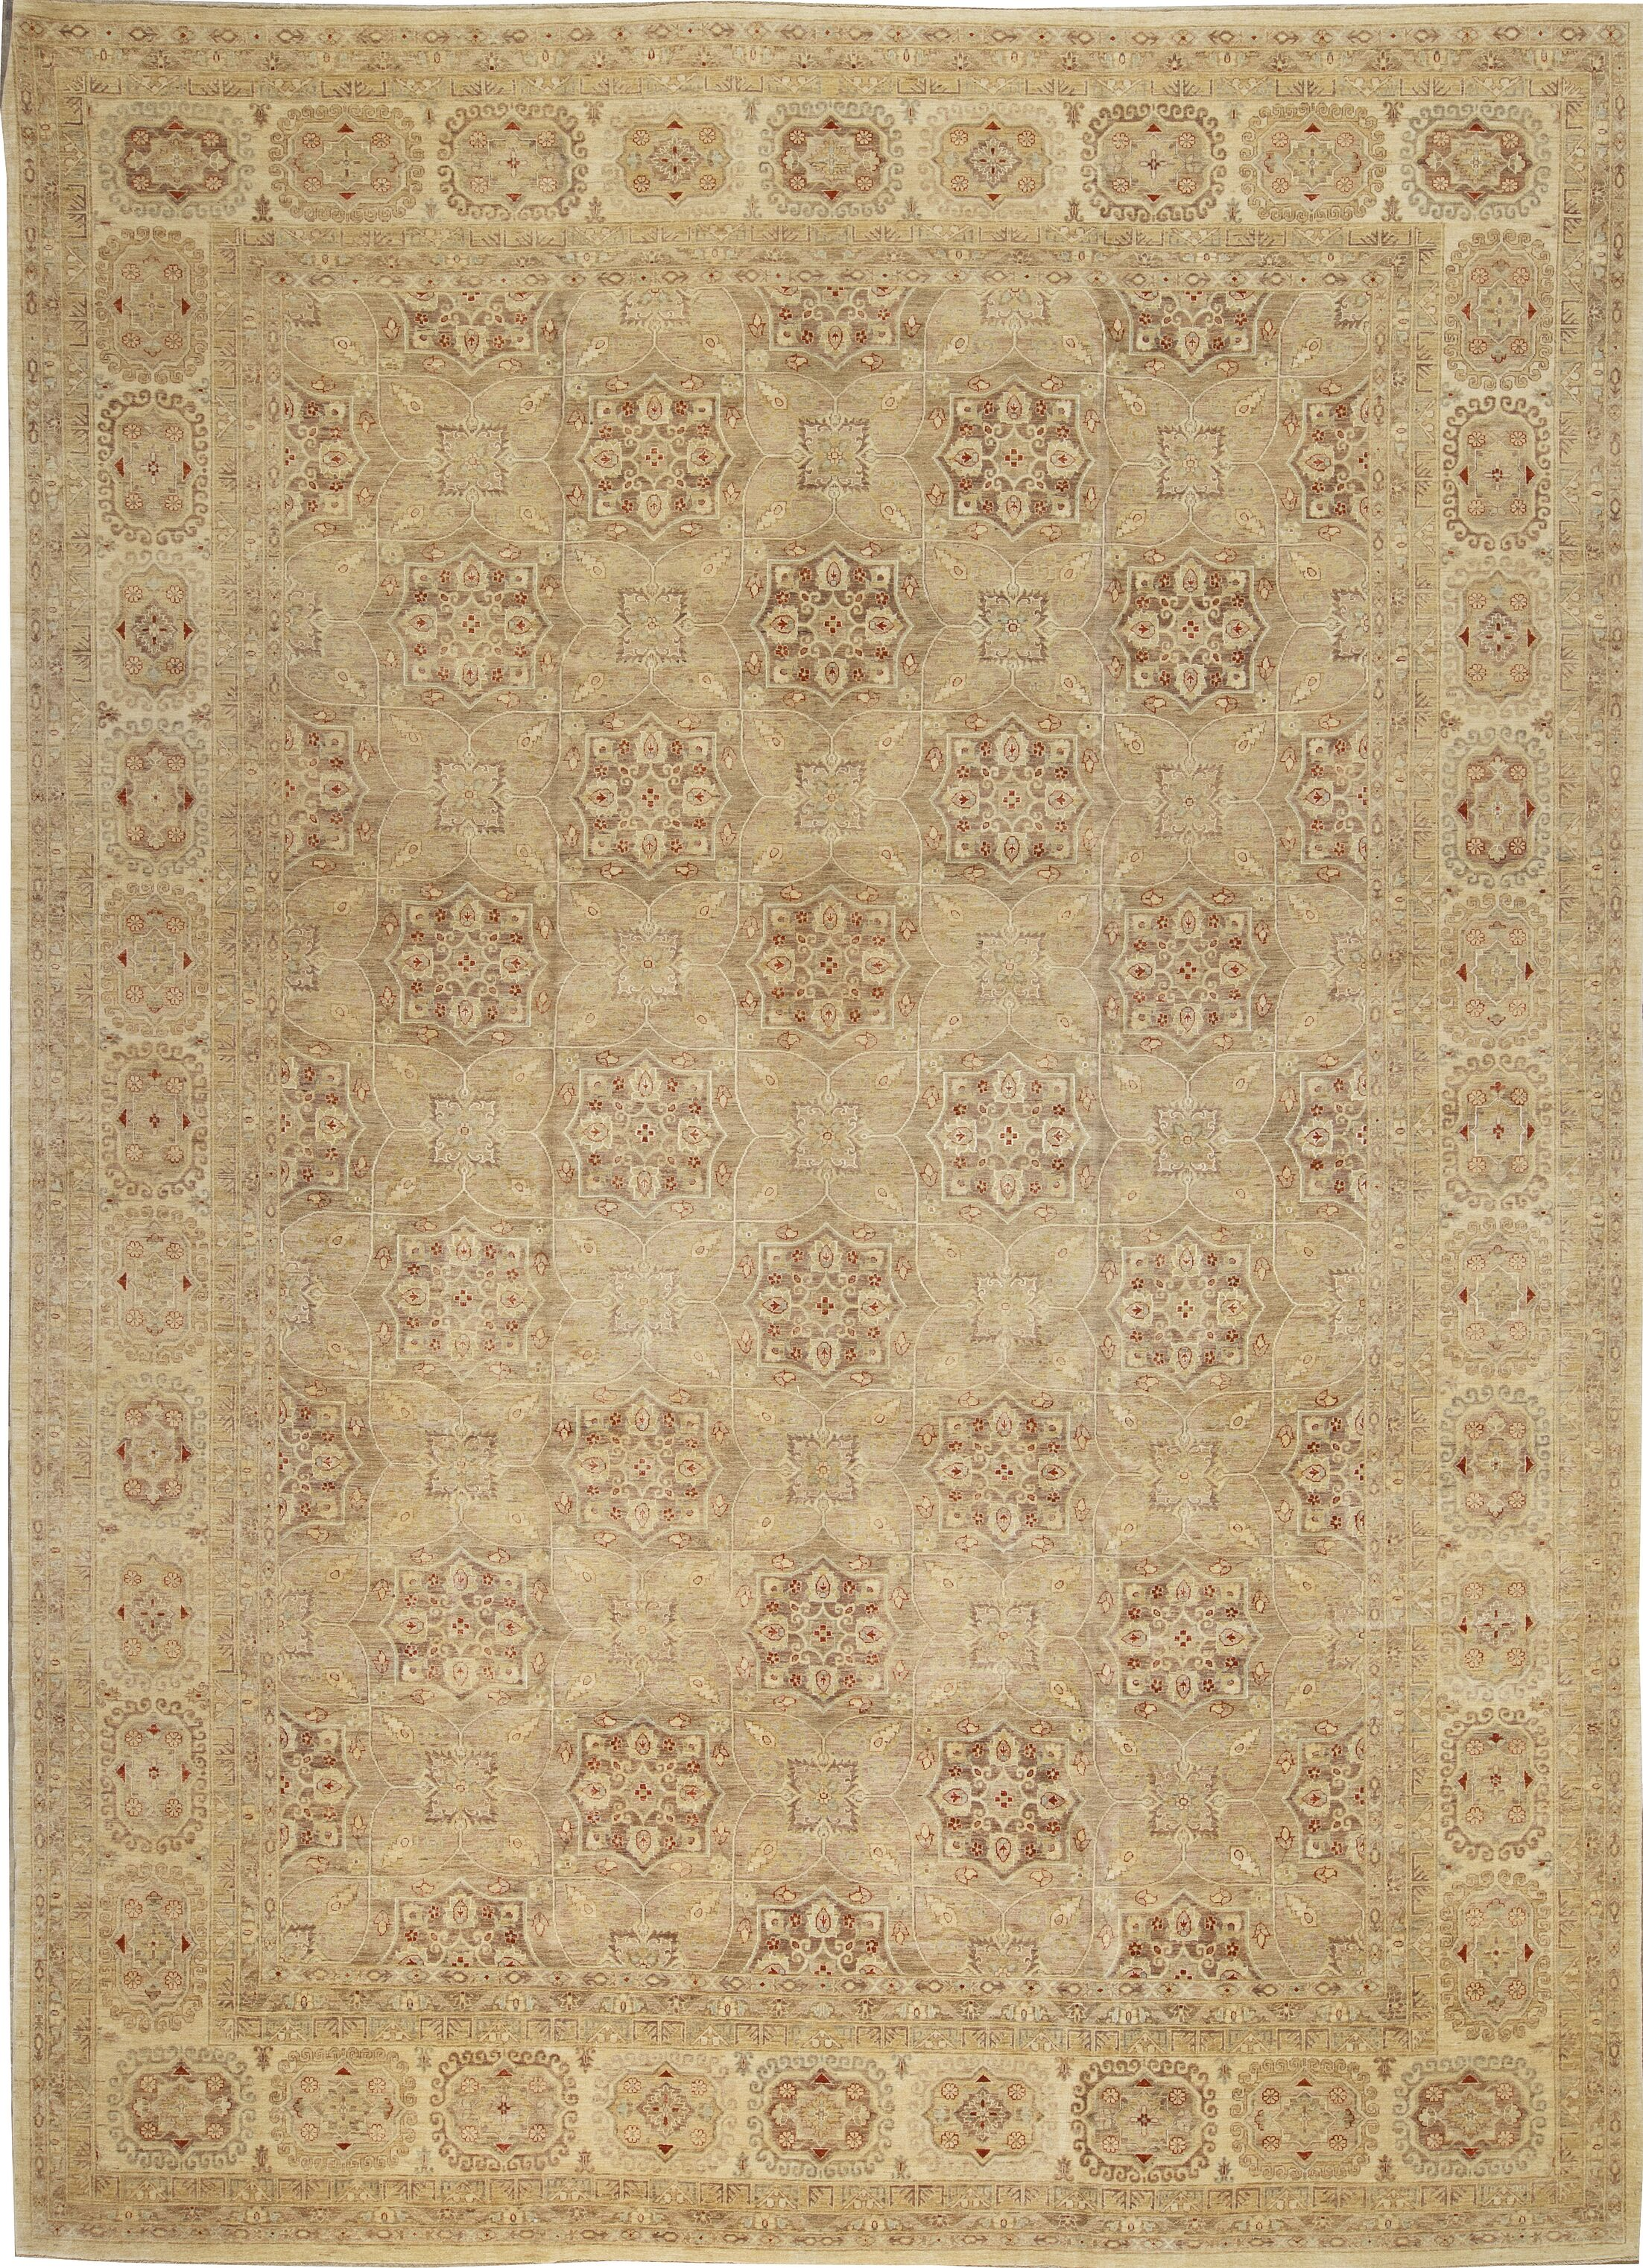 One-of-a-Kind Ziegler 2000 Octogon Spread Hand-Knotted Wool Brown/Beige Area Rug